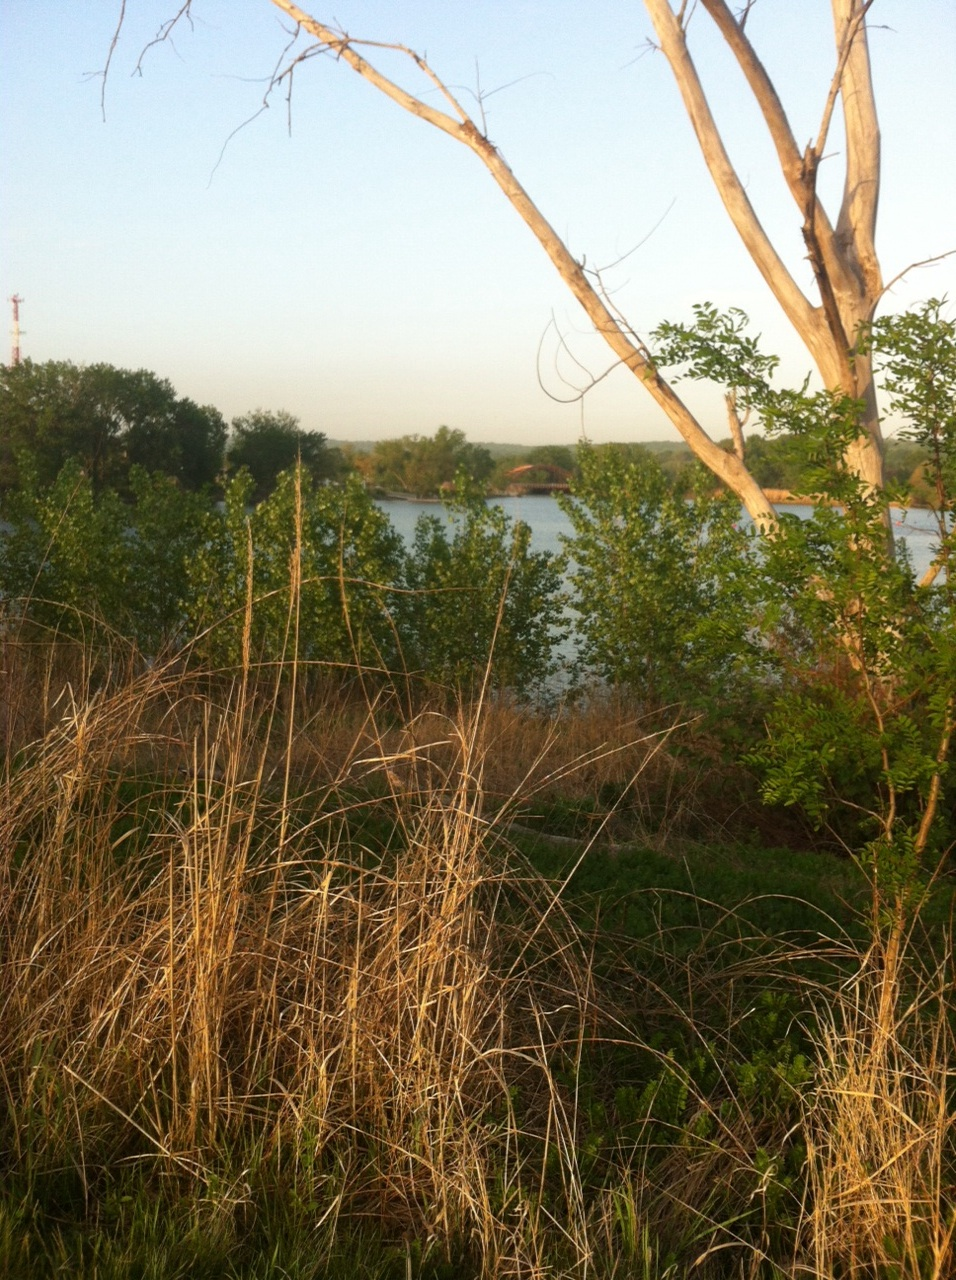 Snapshot from my walk in Overpeck Park, Bergen County, NJ. Nice, but doesn't compare to my Central Park.